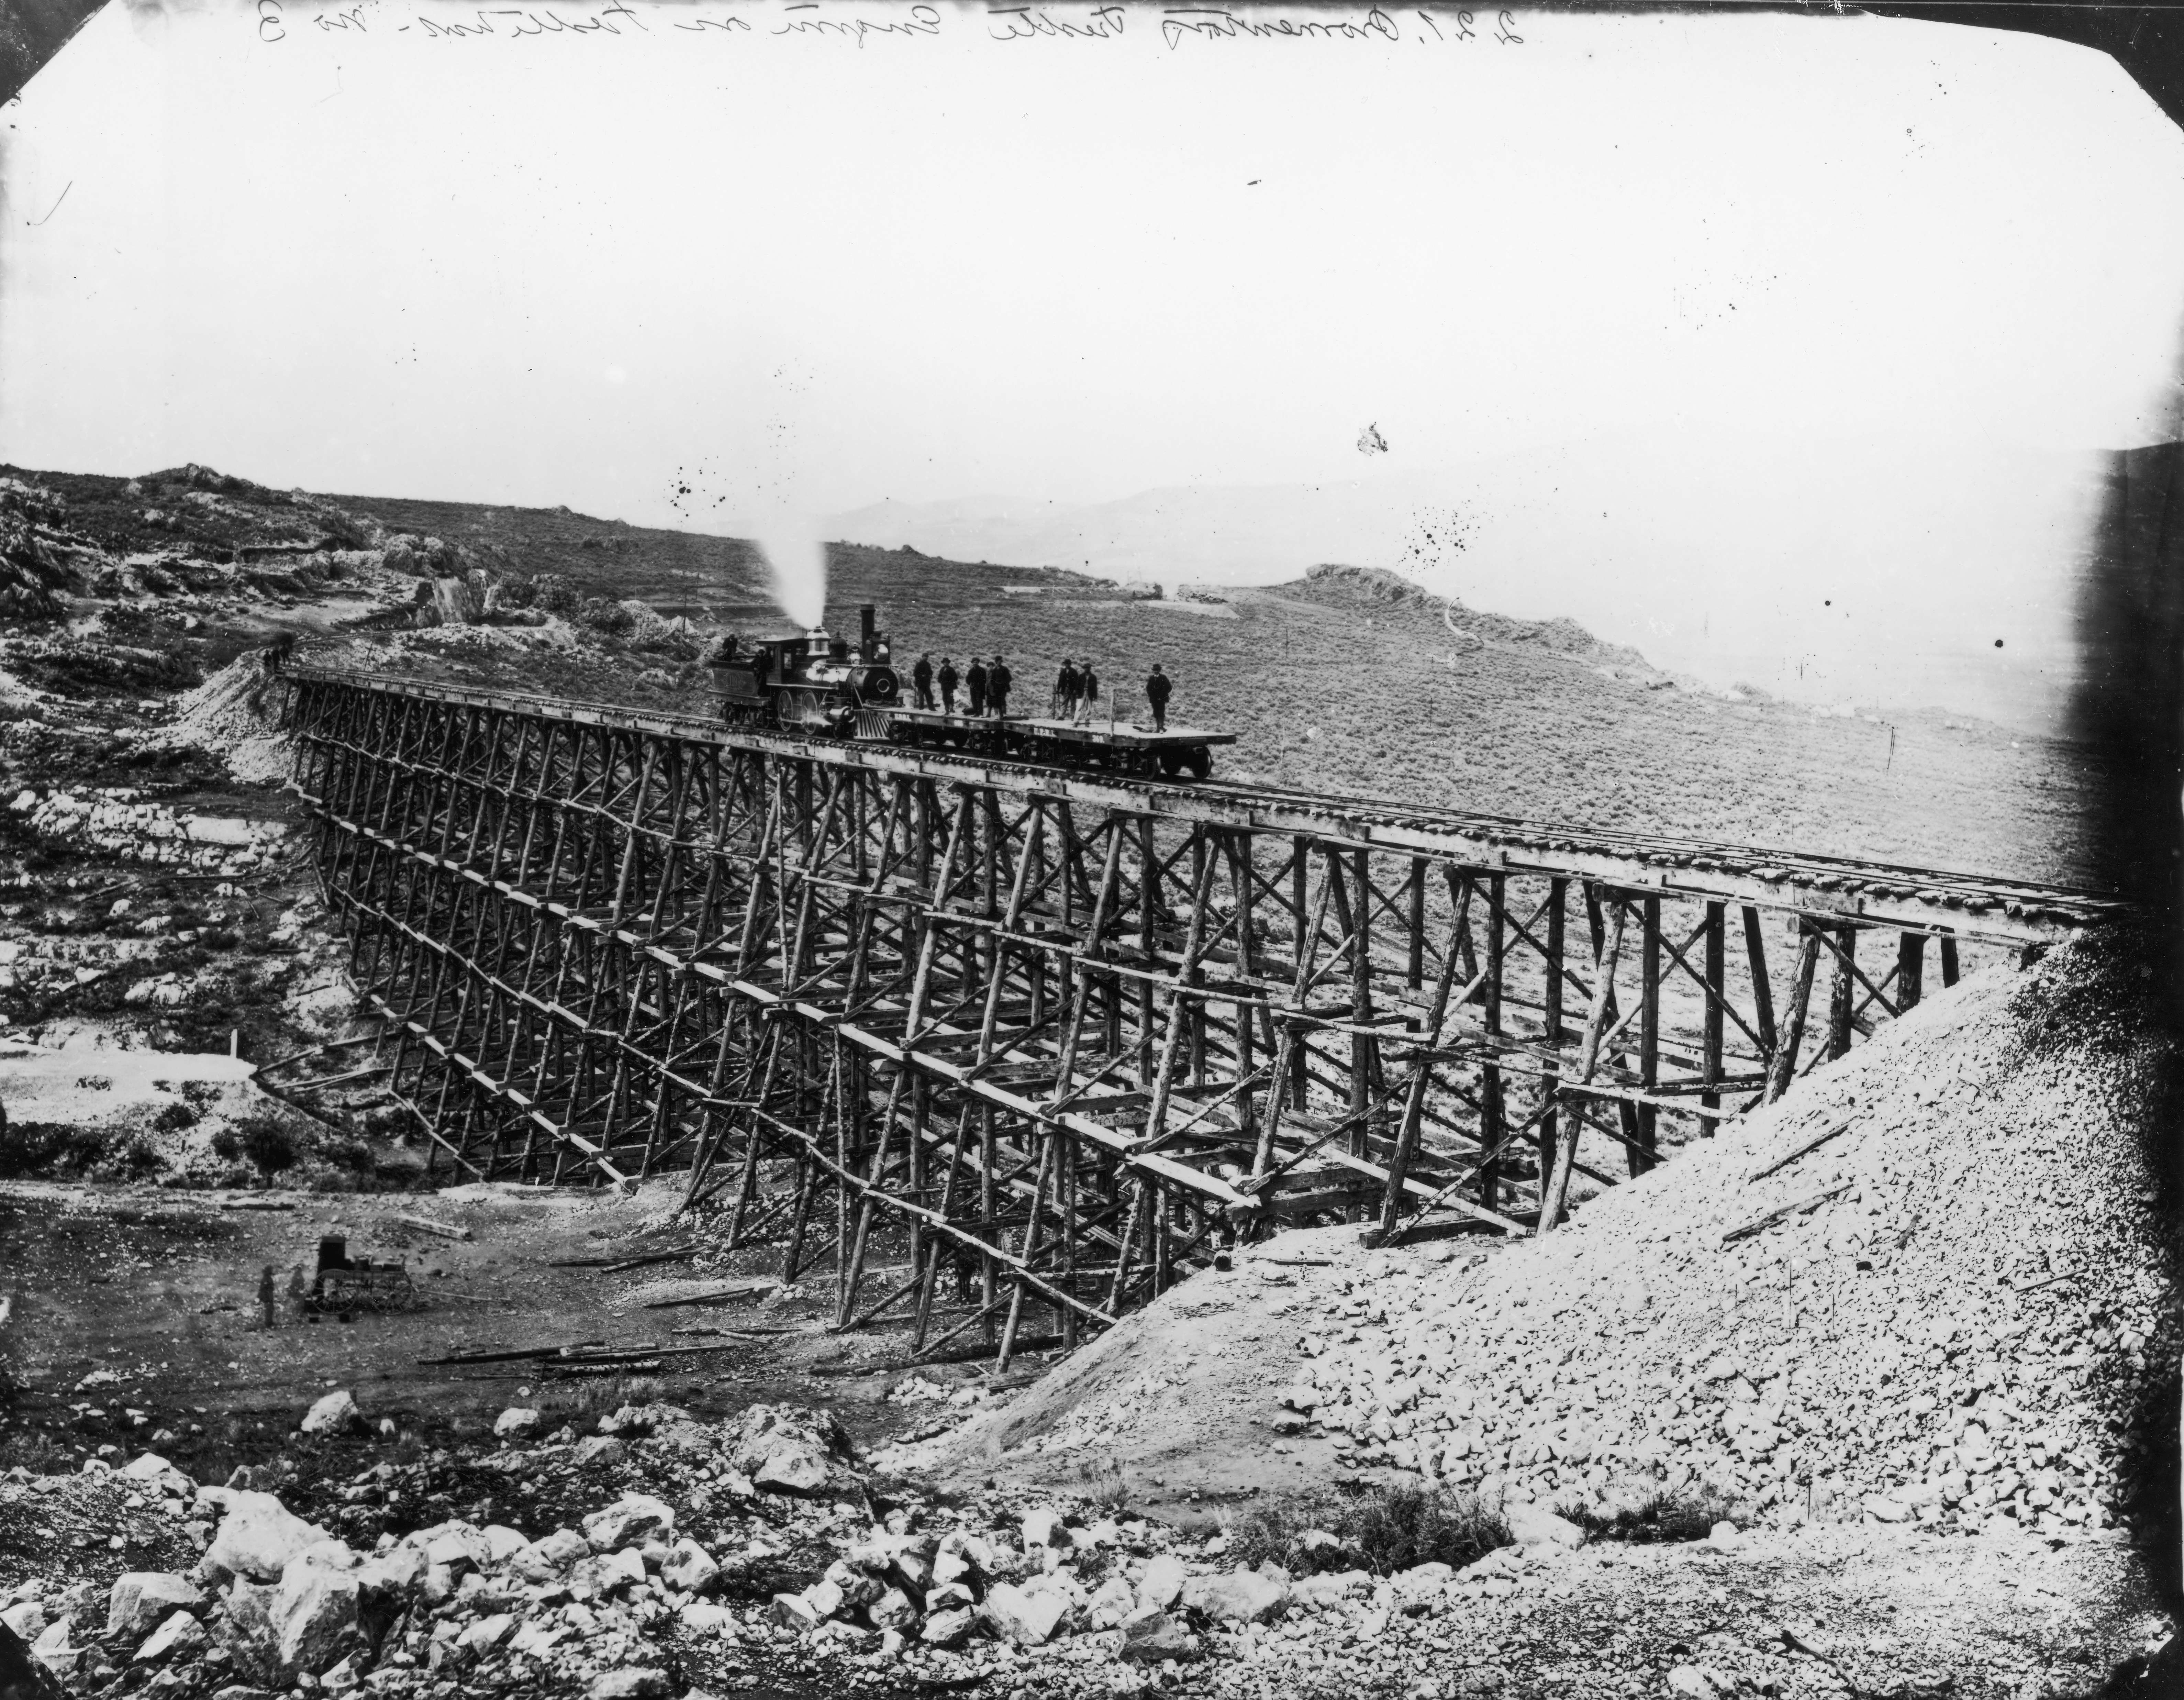 Photograph of First Transcontinental Railroad, circa 1869.